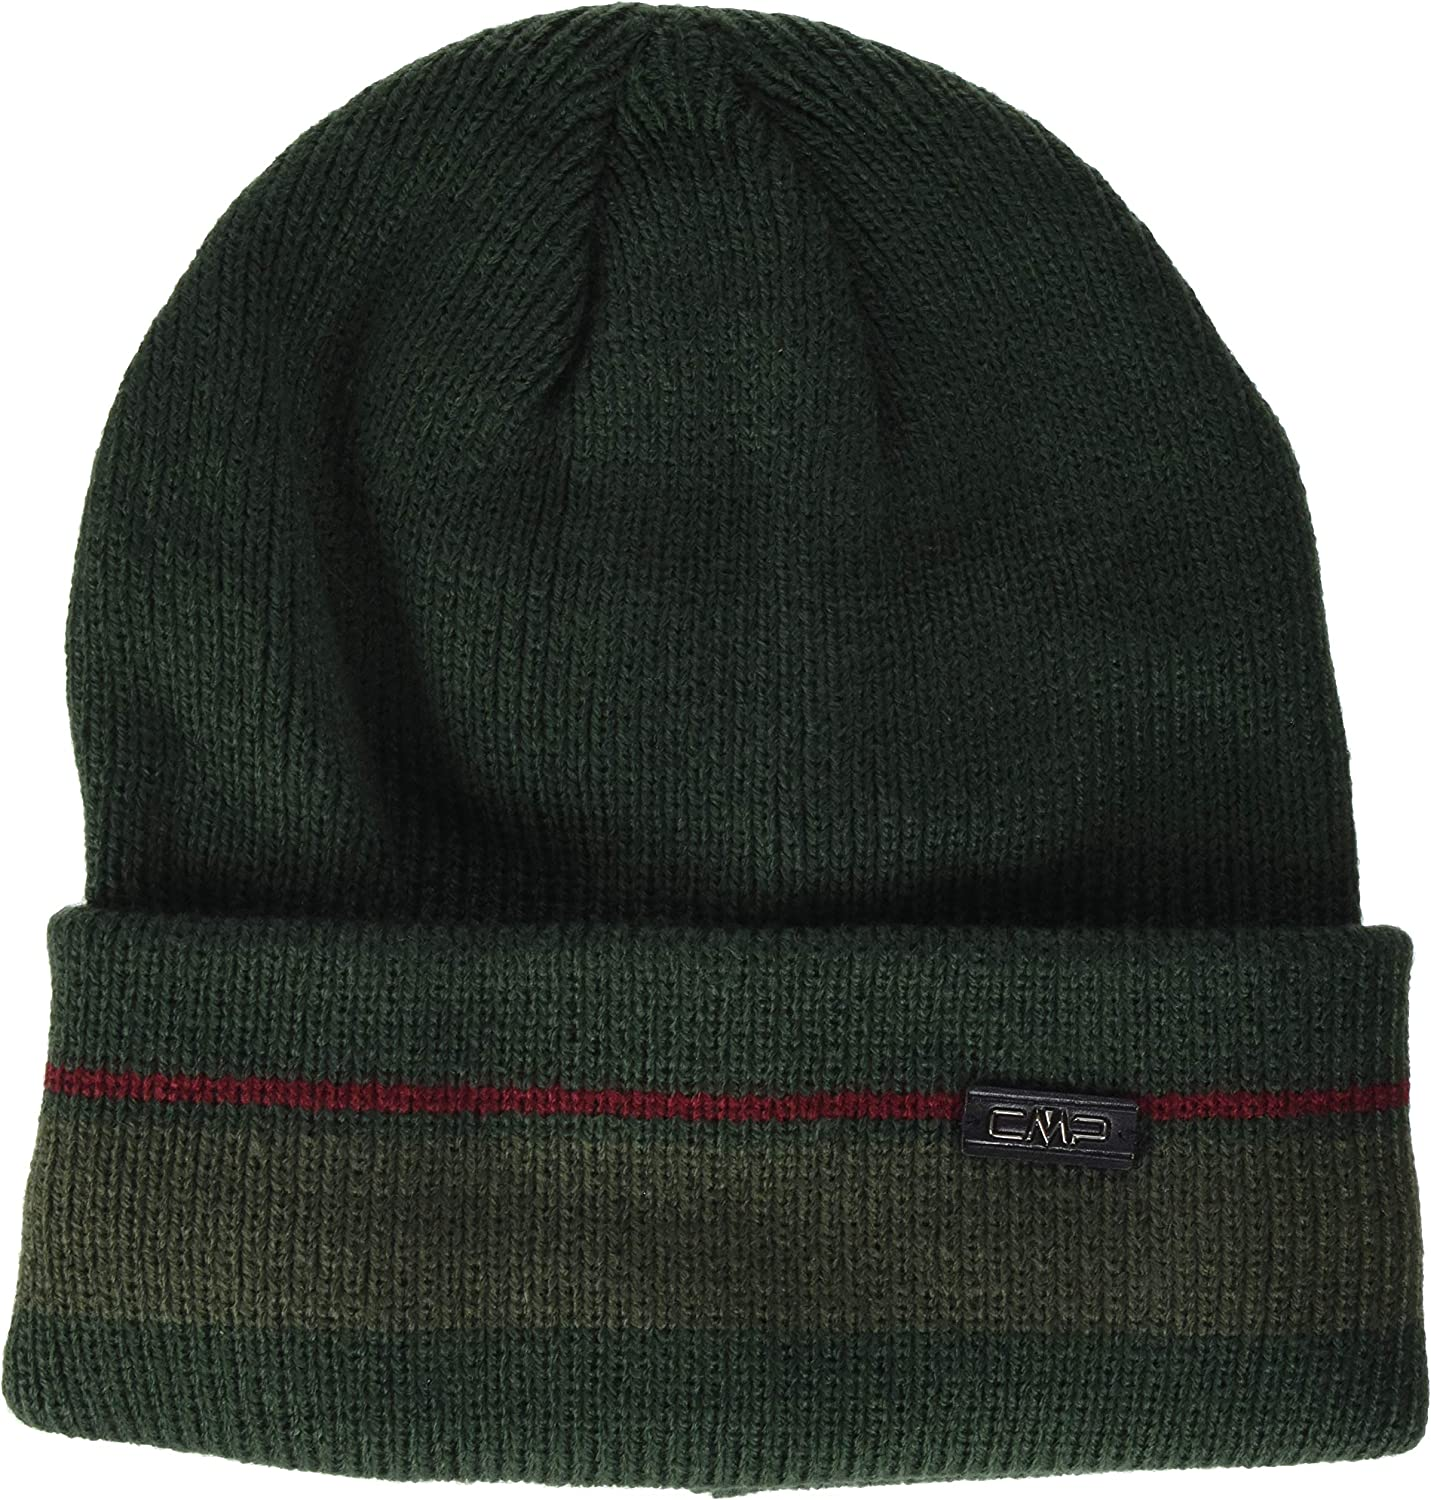 Hombre CMP Berretto Knitted 3m Thinsulate Featherless Gorro